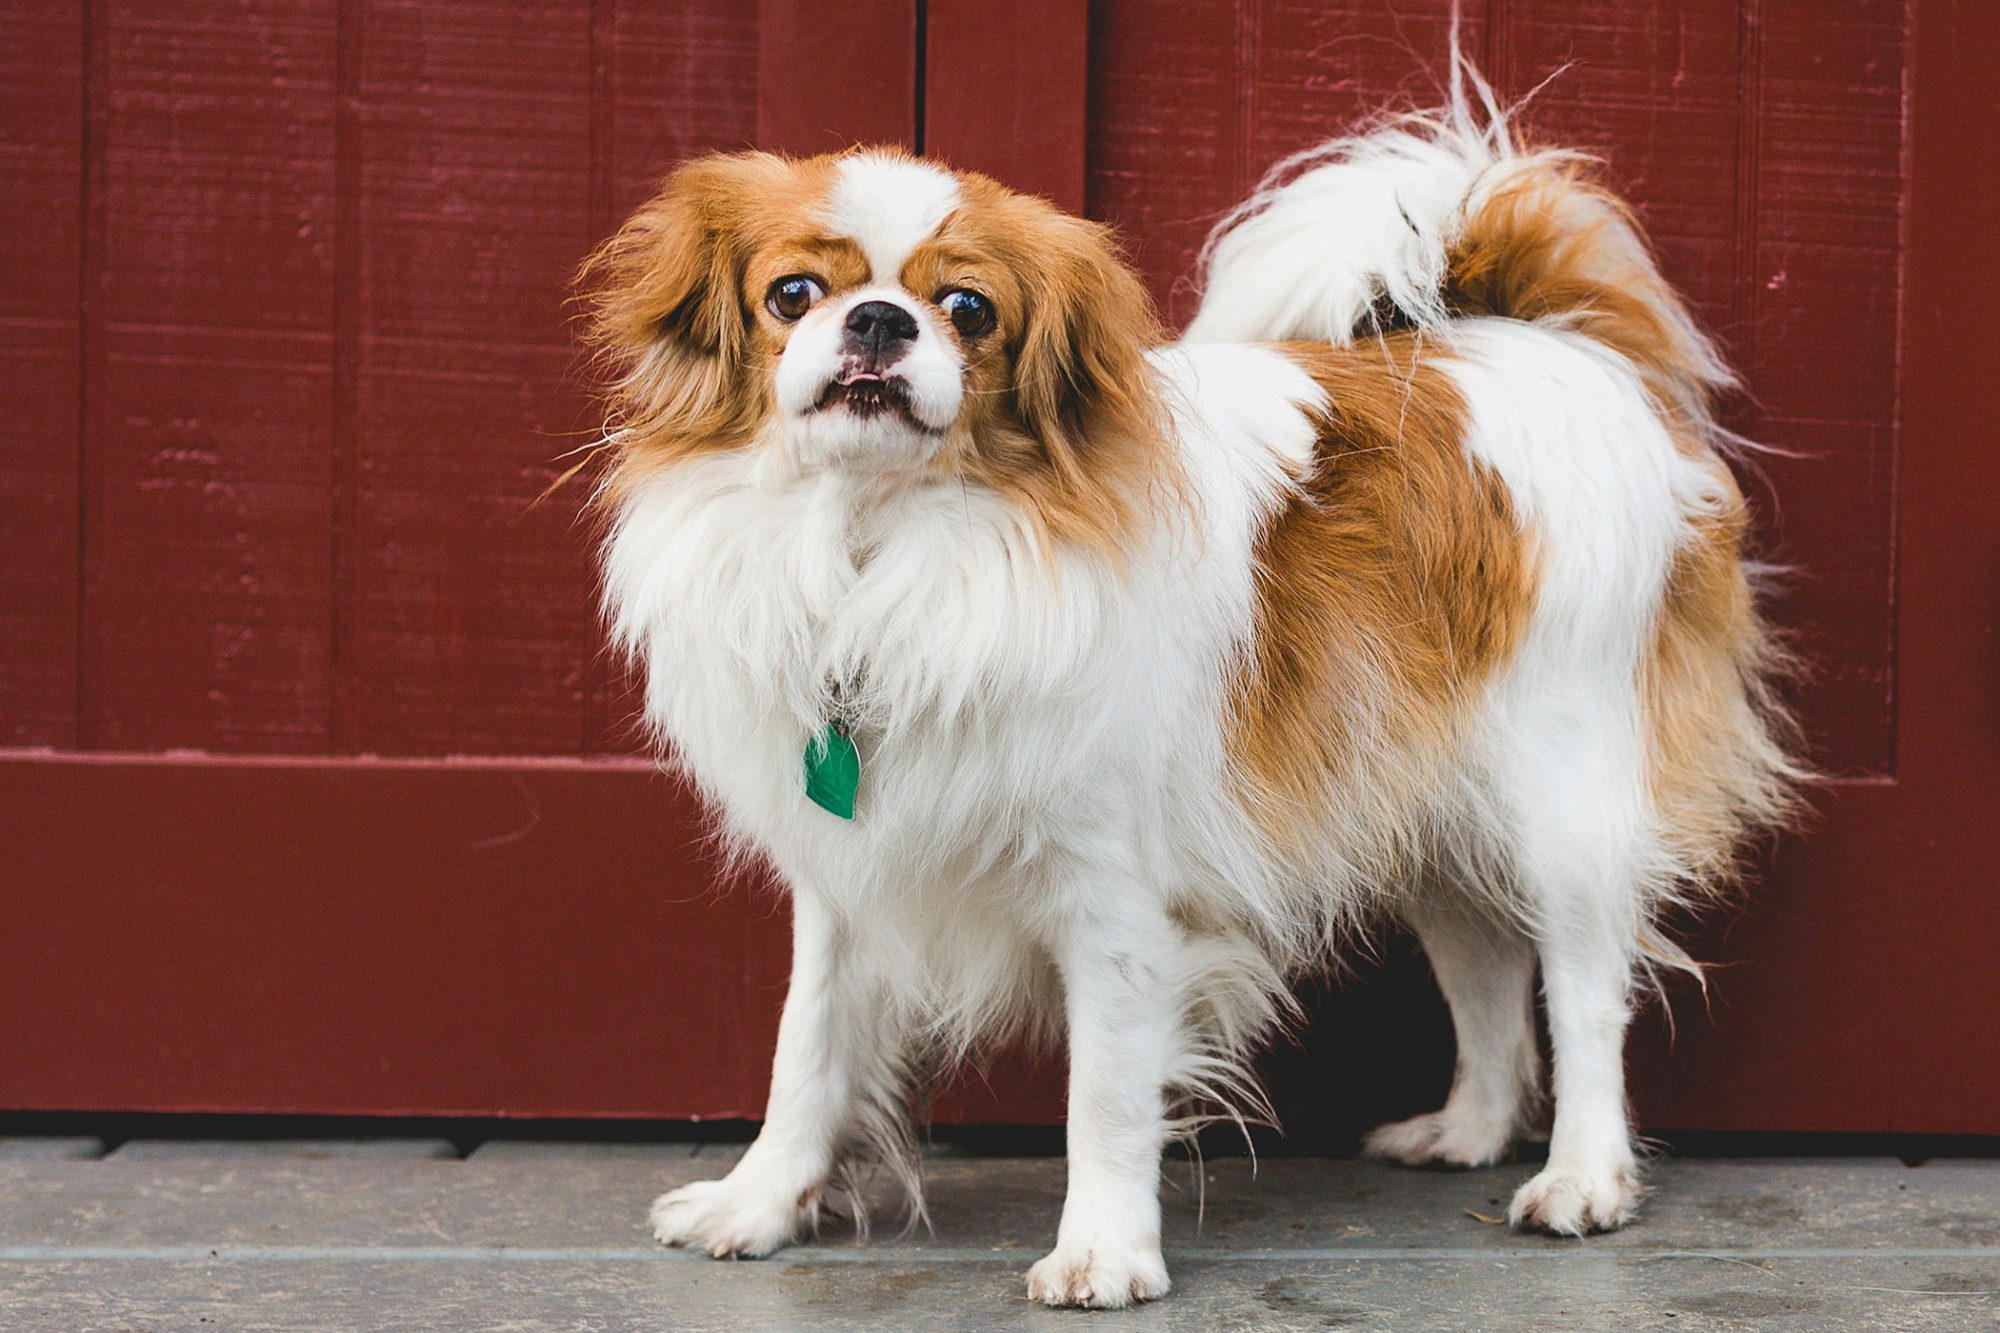 White and orange japanese chin stands in front of red door